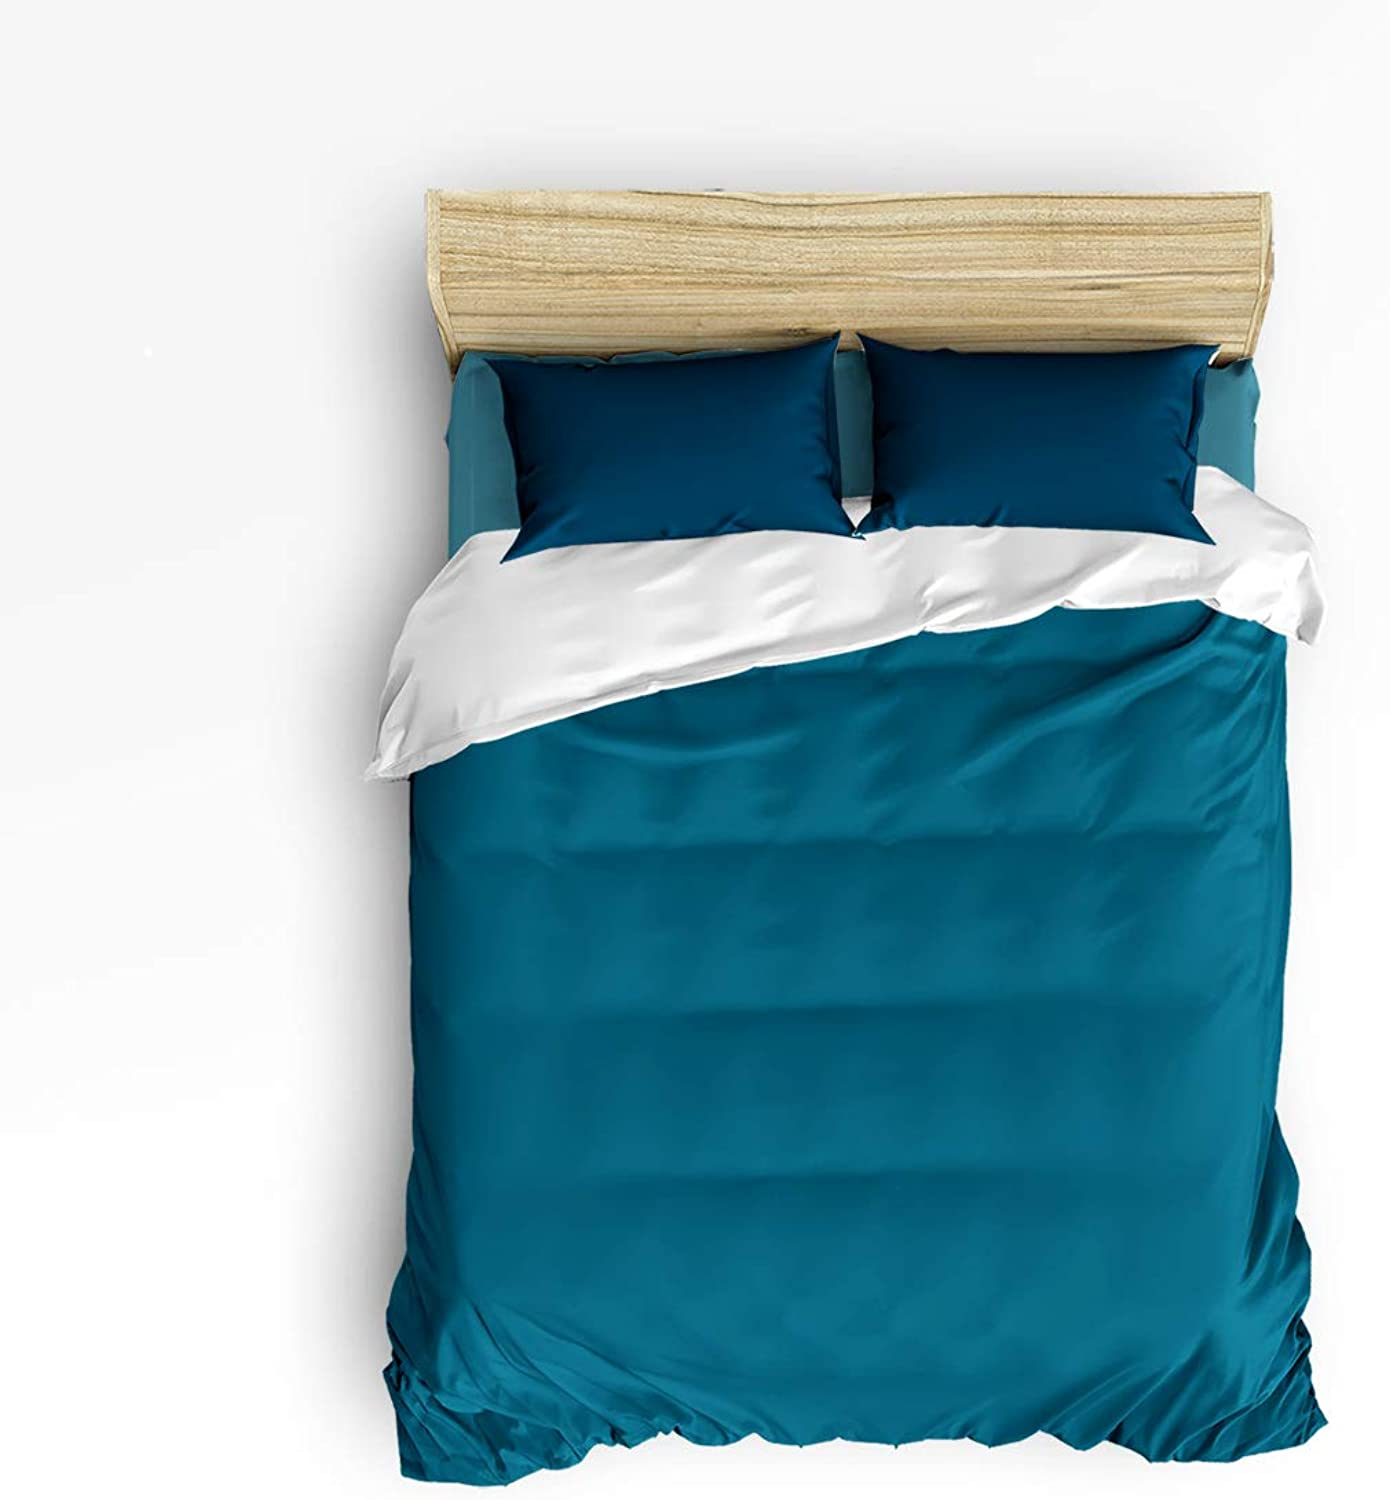 Fandim Fly Bedding Set Twin Size Simplicity Solid color,Comforter Cover Sets for All Season